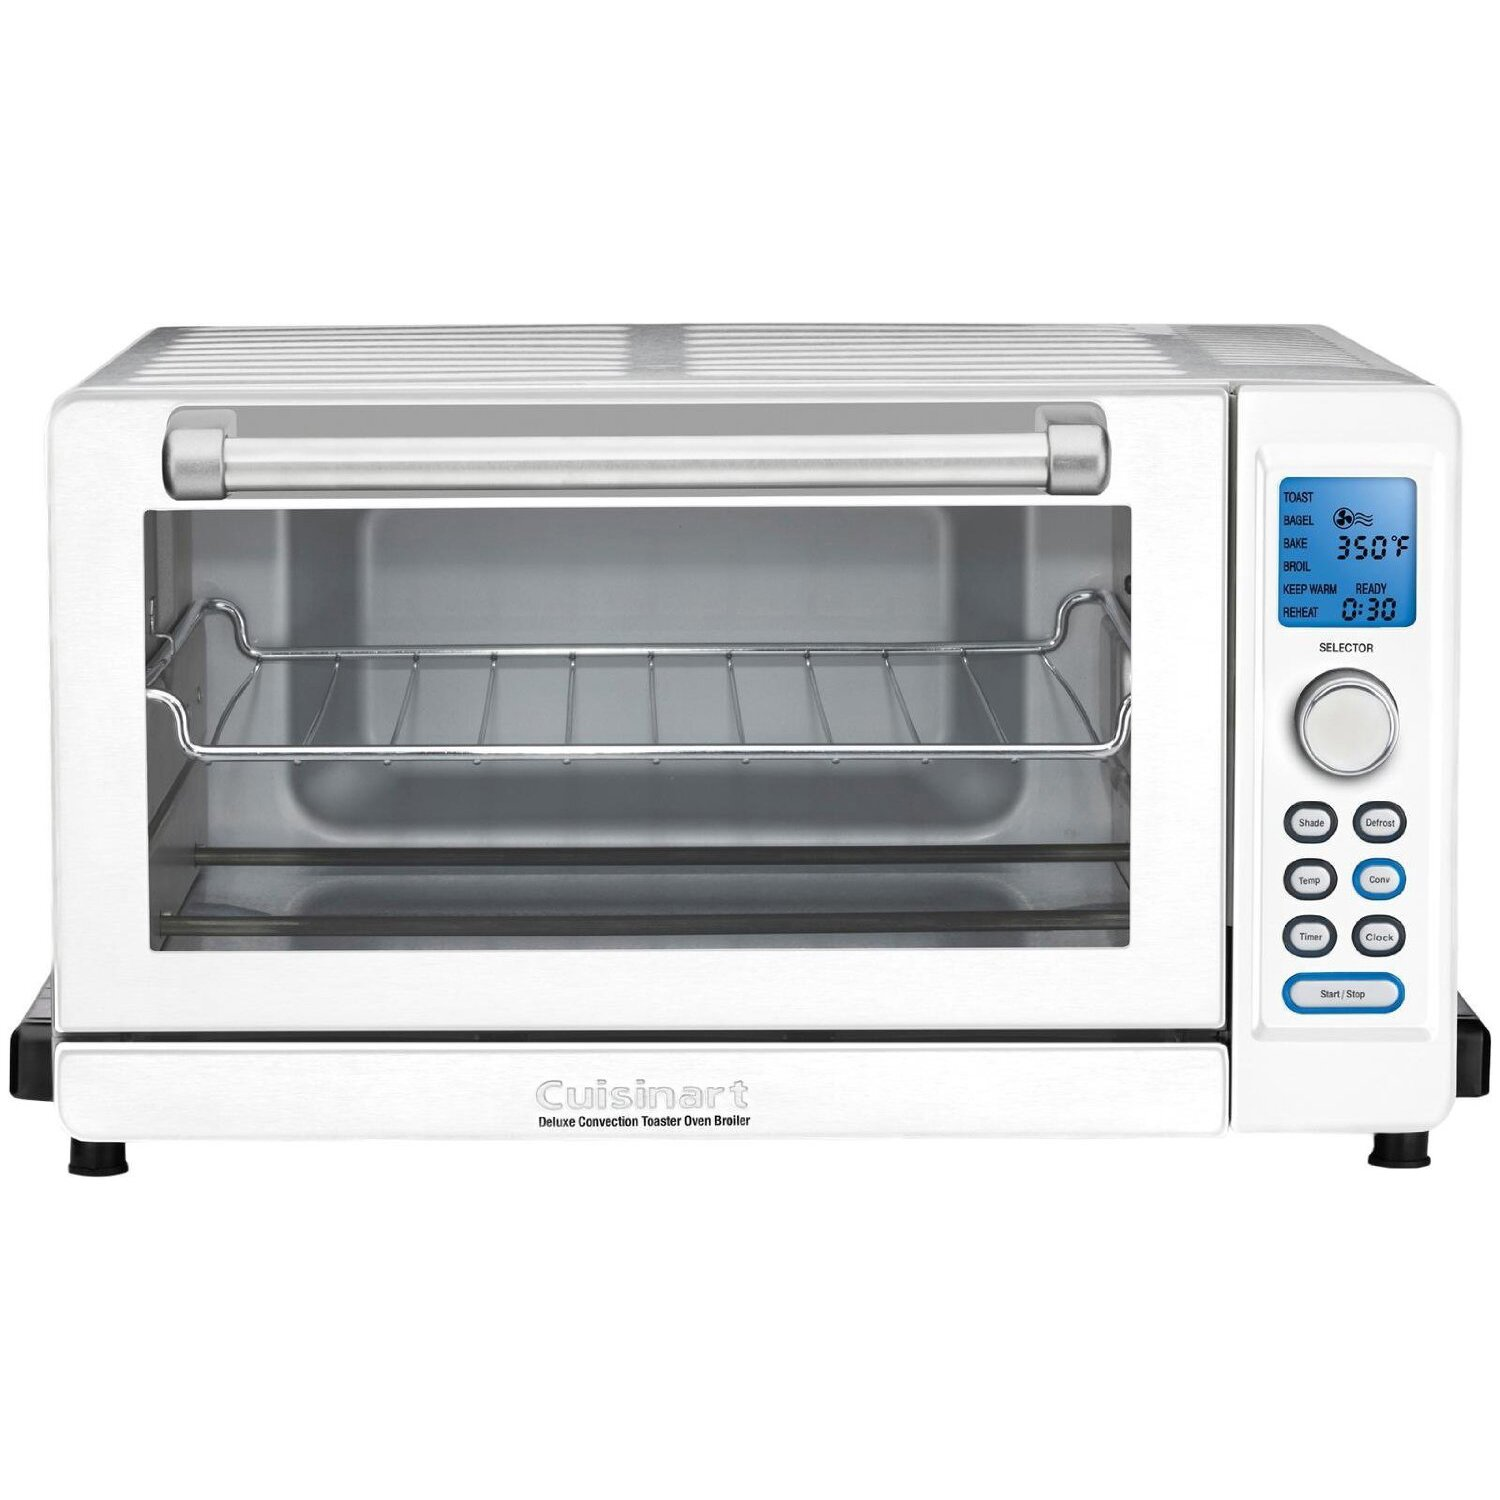 Under the cabinet toaster oven - Cuisinart Deluxe Convection Toaster Oven Broiler